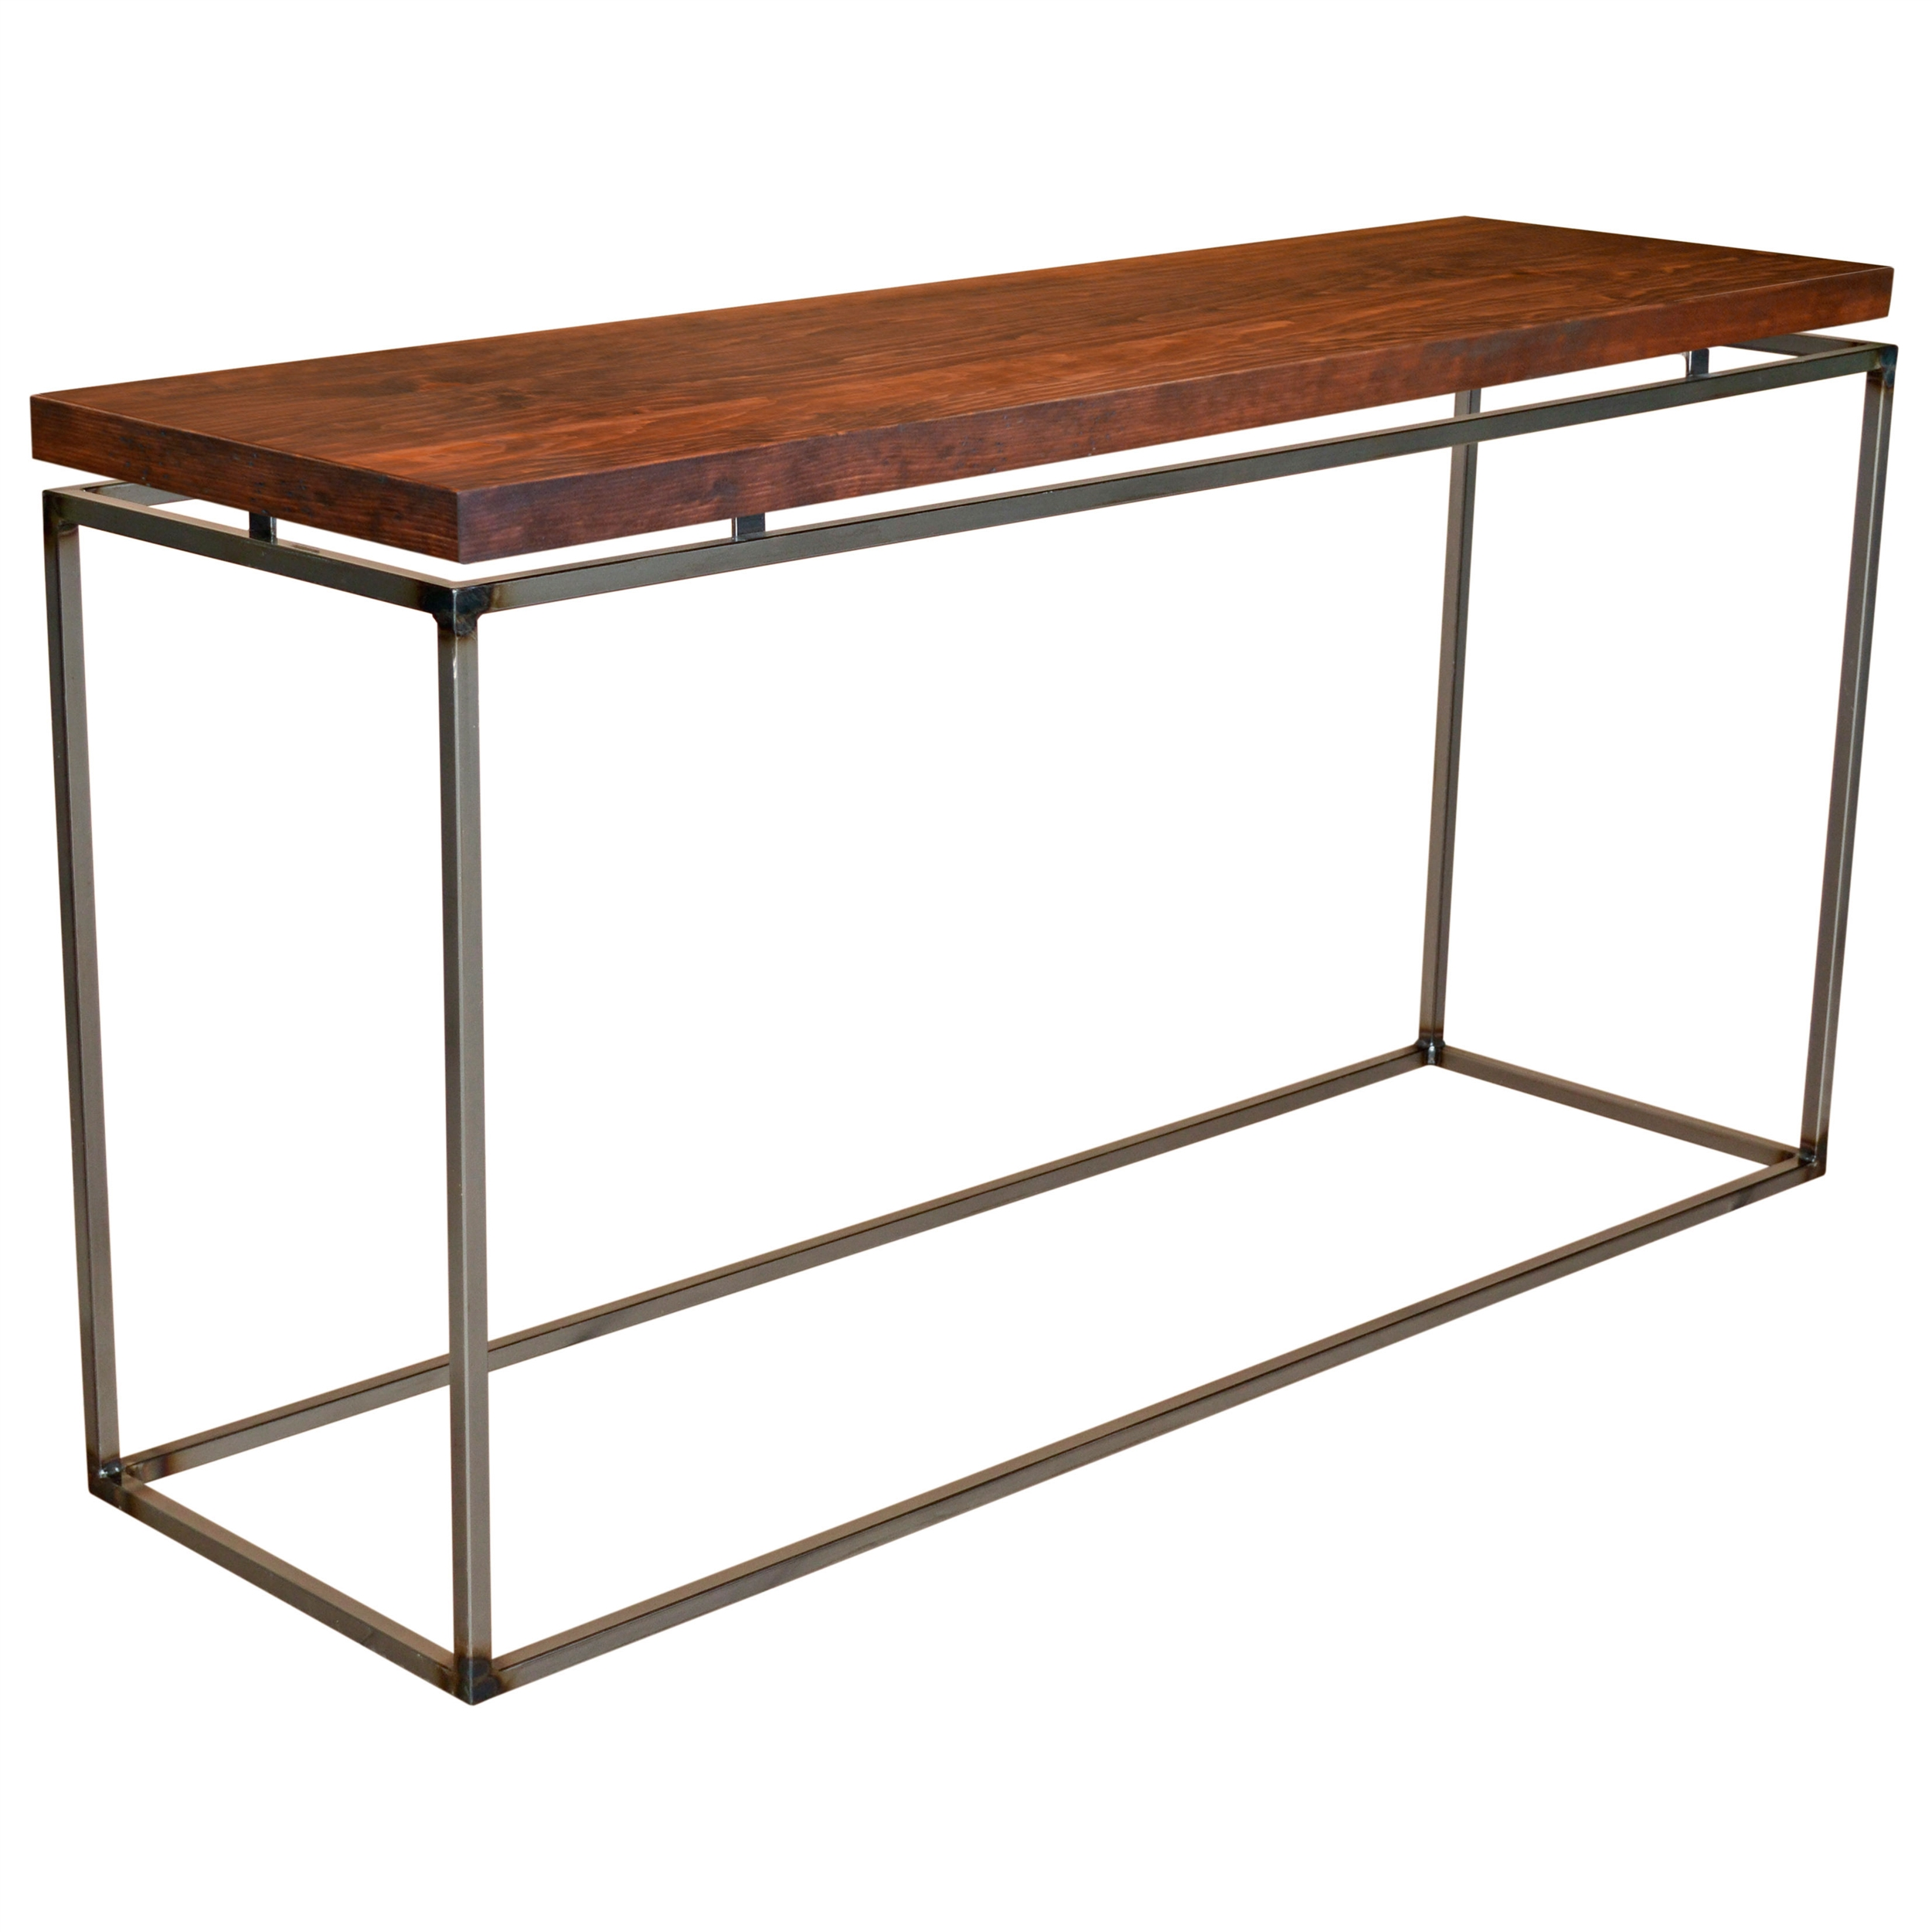 American country console table 60 x 18 x 32